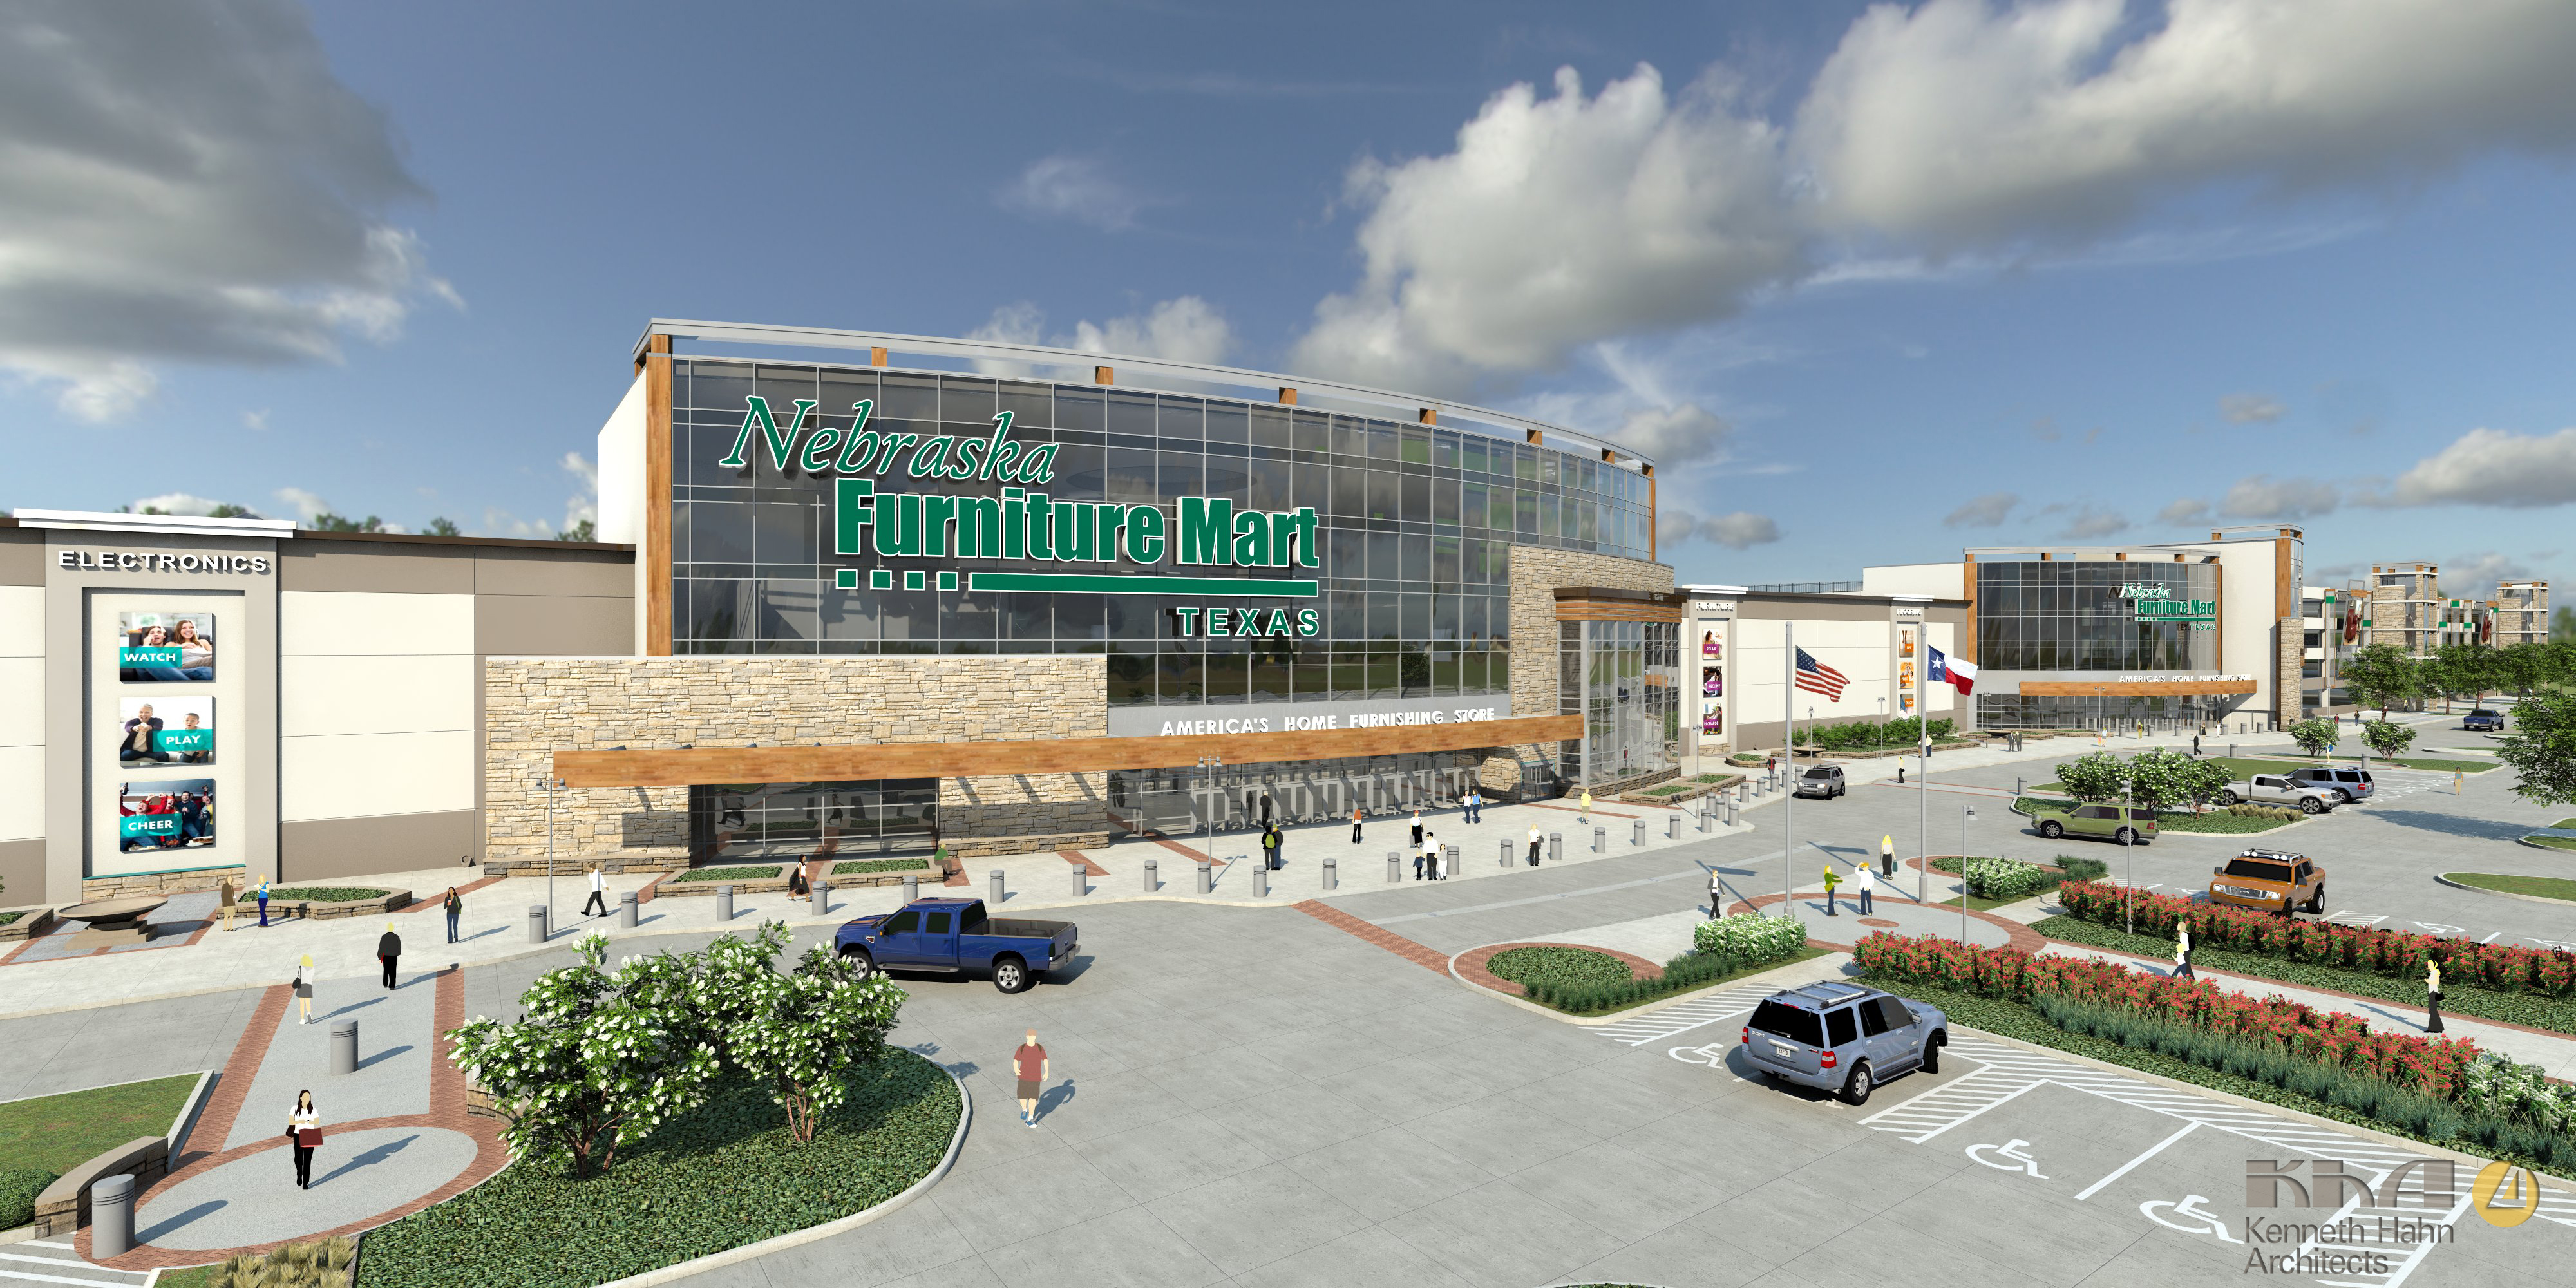 Nebraska Furniture Mart prides itself on offering something for every design style, be it mid-century, traditional, rustic or glam, and every budget. With thousands of sofas, recliners, tables, and rugs in stock, they have the merchandise to back it up.